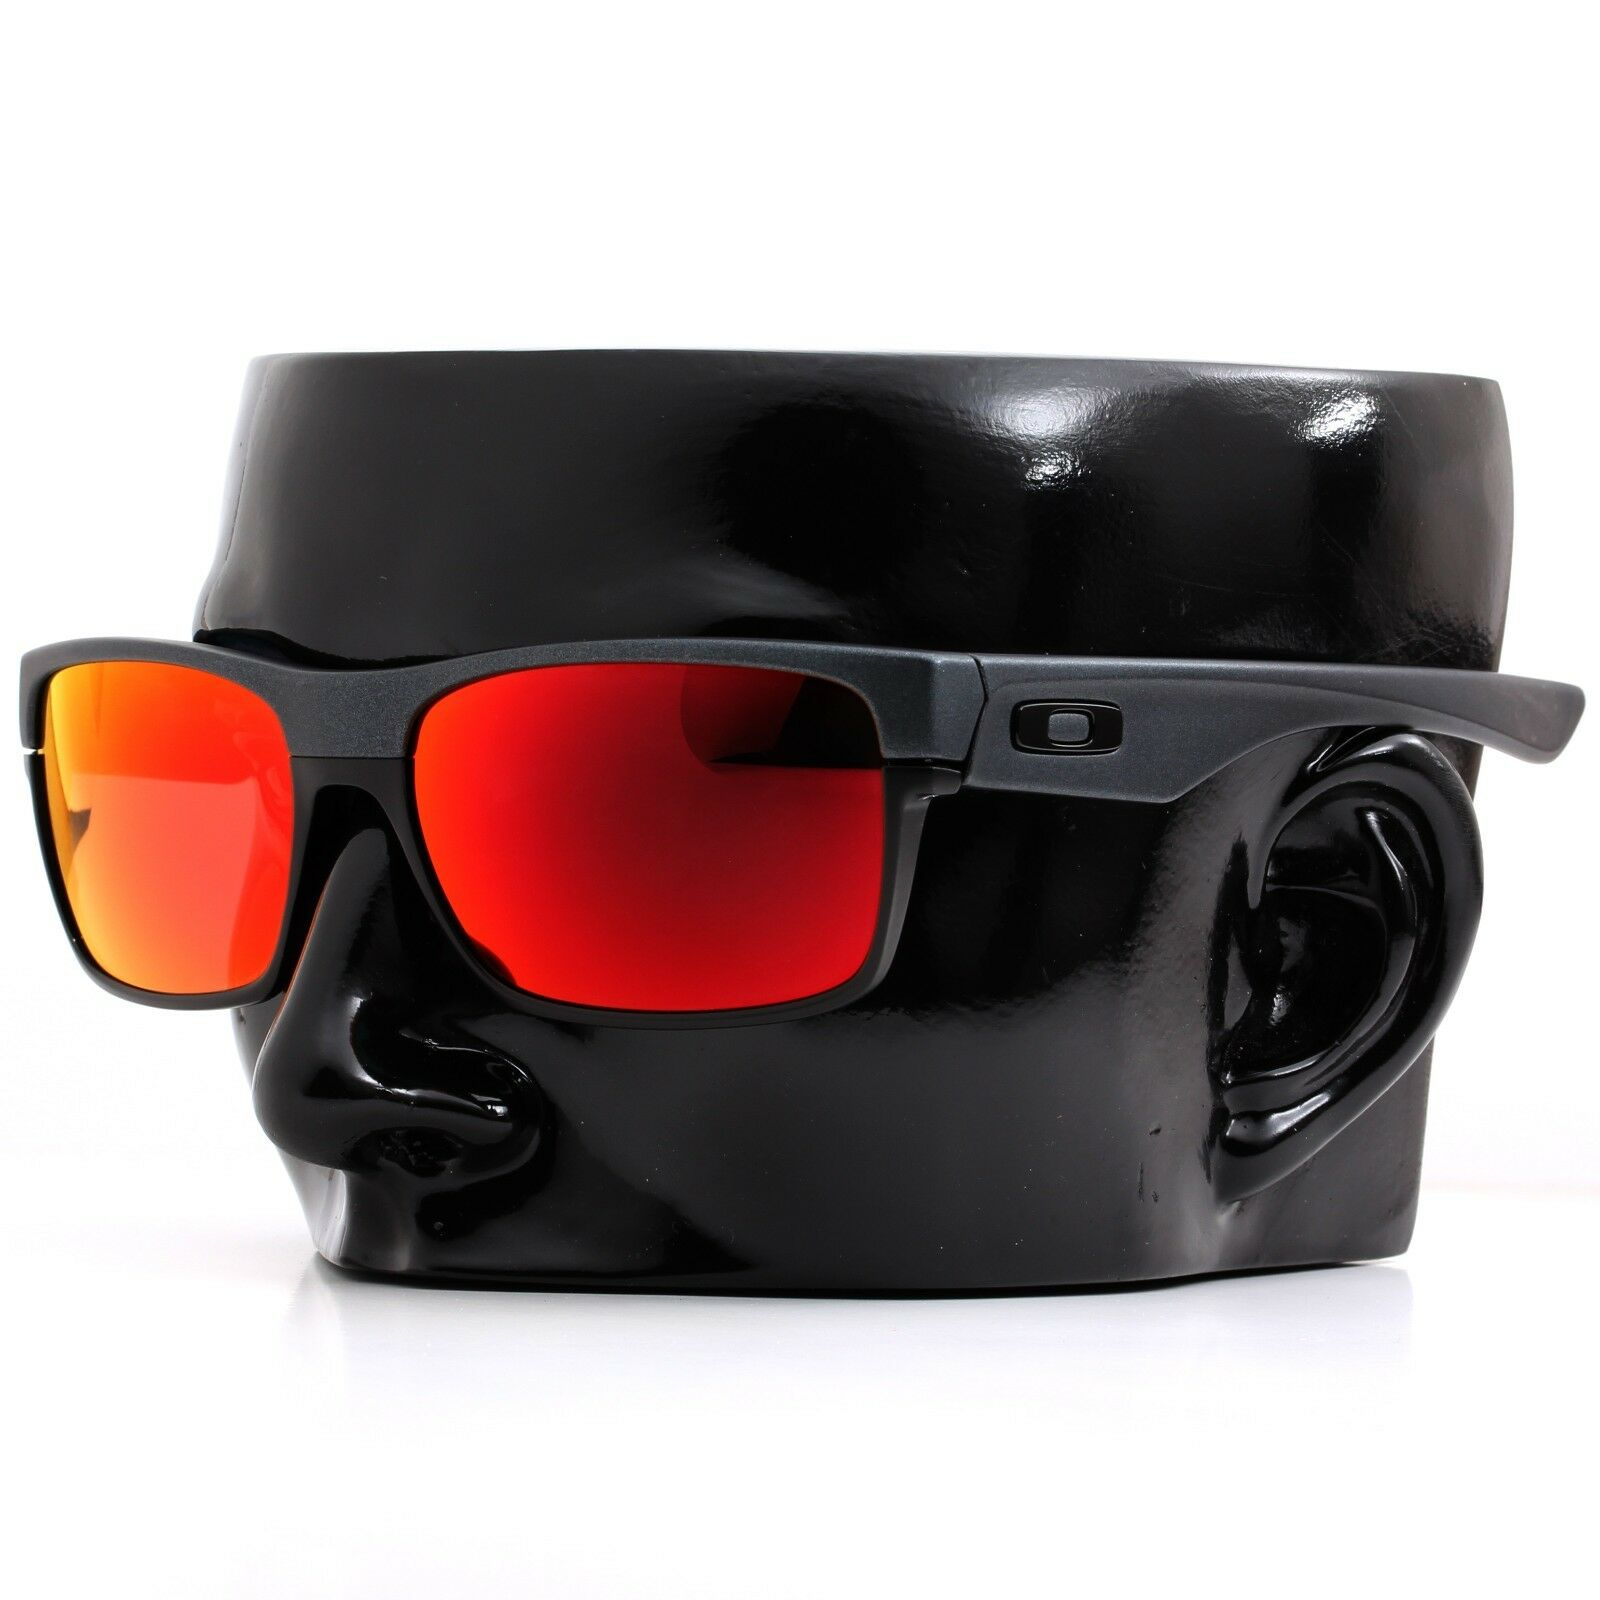 aftermarket oakley lenses j1kv  Polarized IKON Iridium Replacement Lenses For Oakley Twoface + Red Mirror